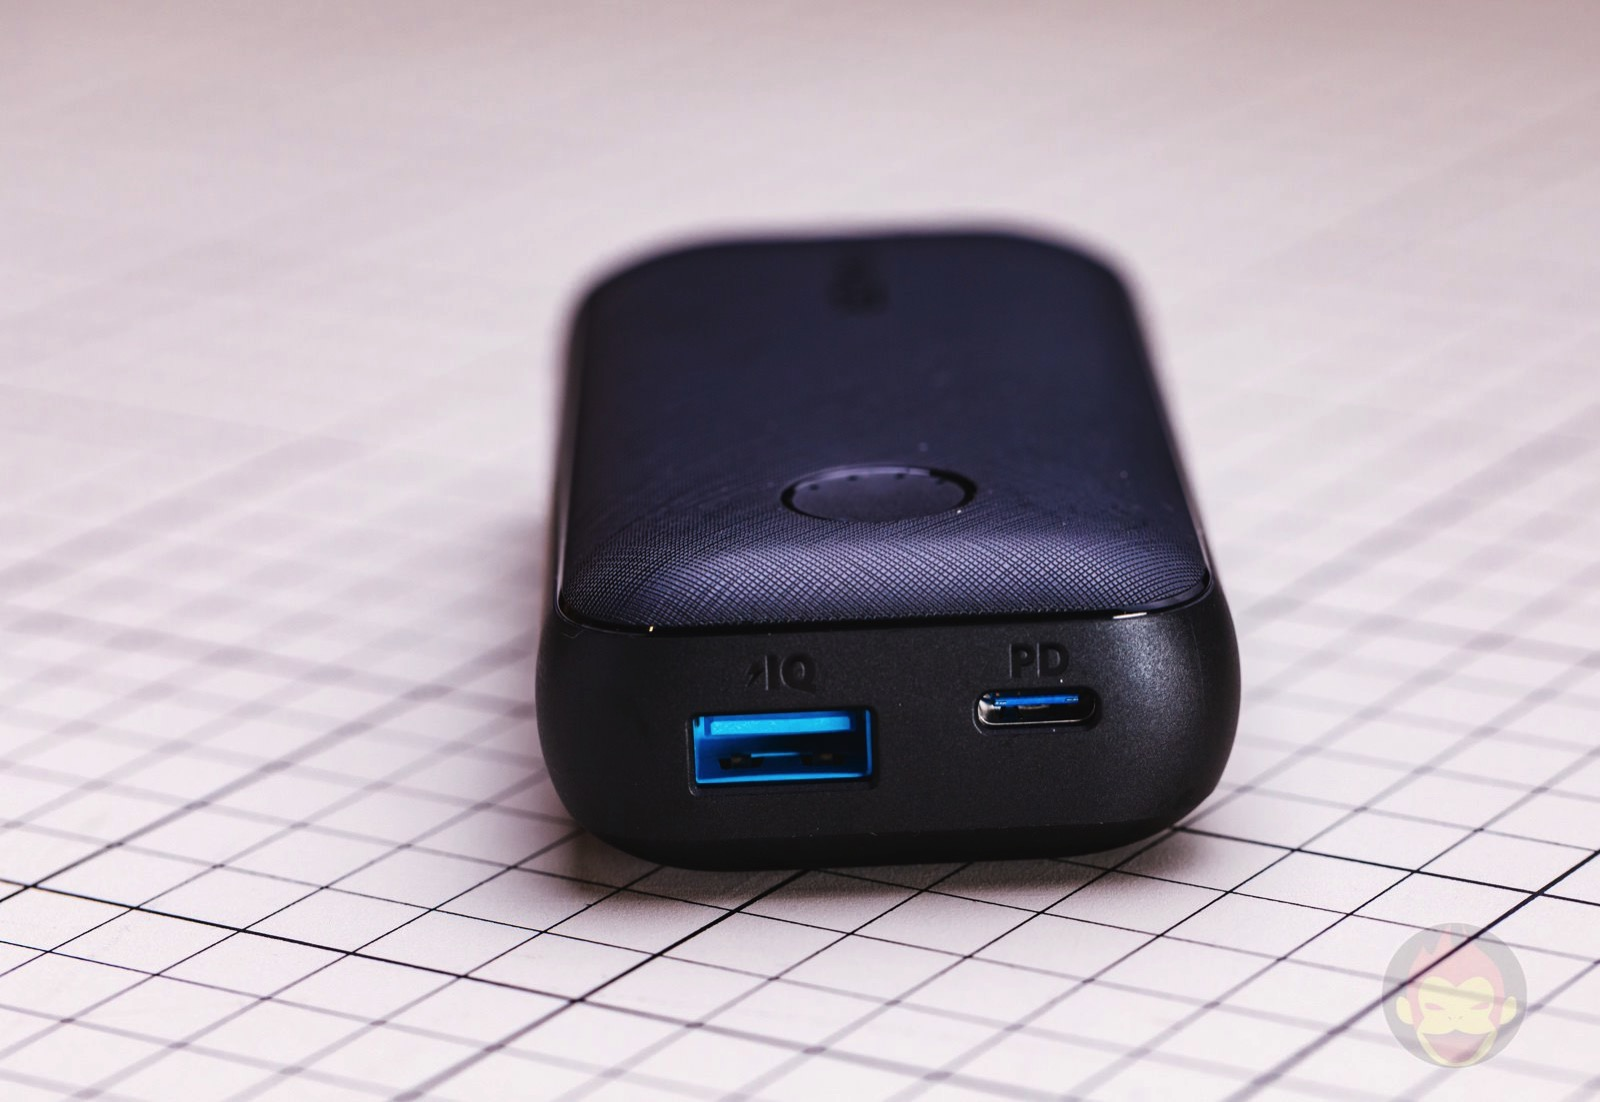 Anker-PowerCore-10000-PD-Redux-Review-13.jpg